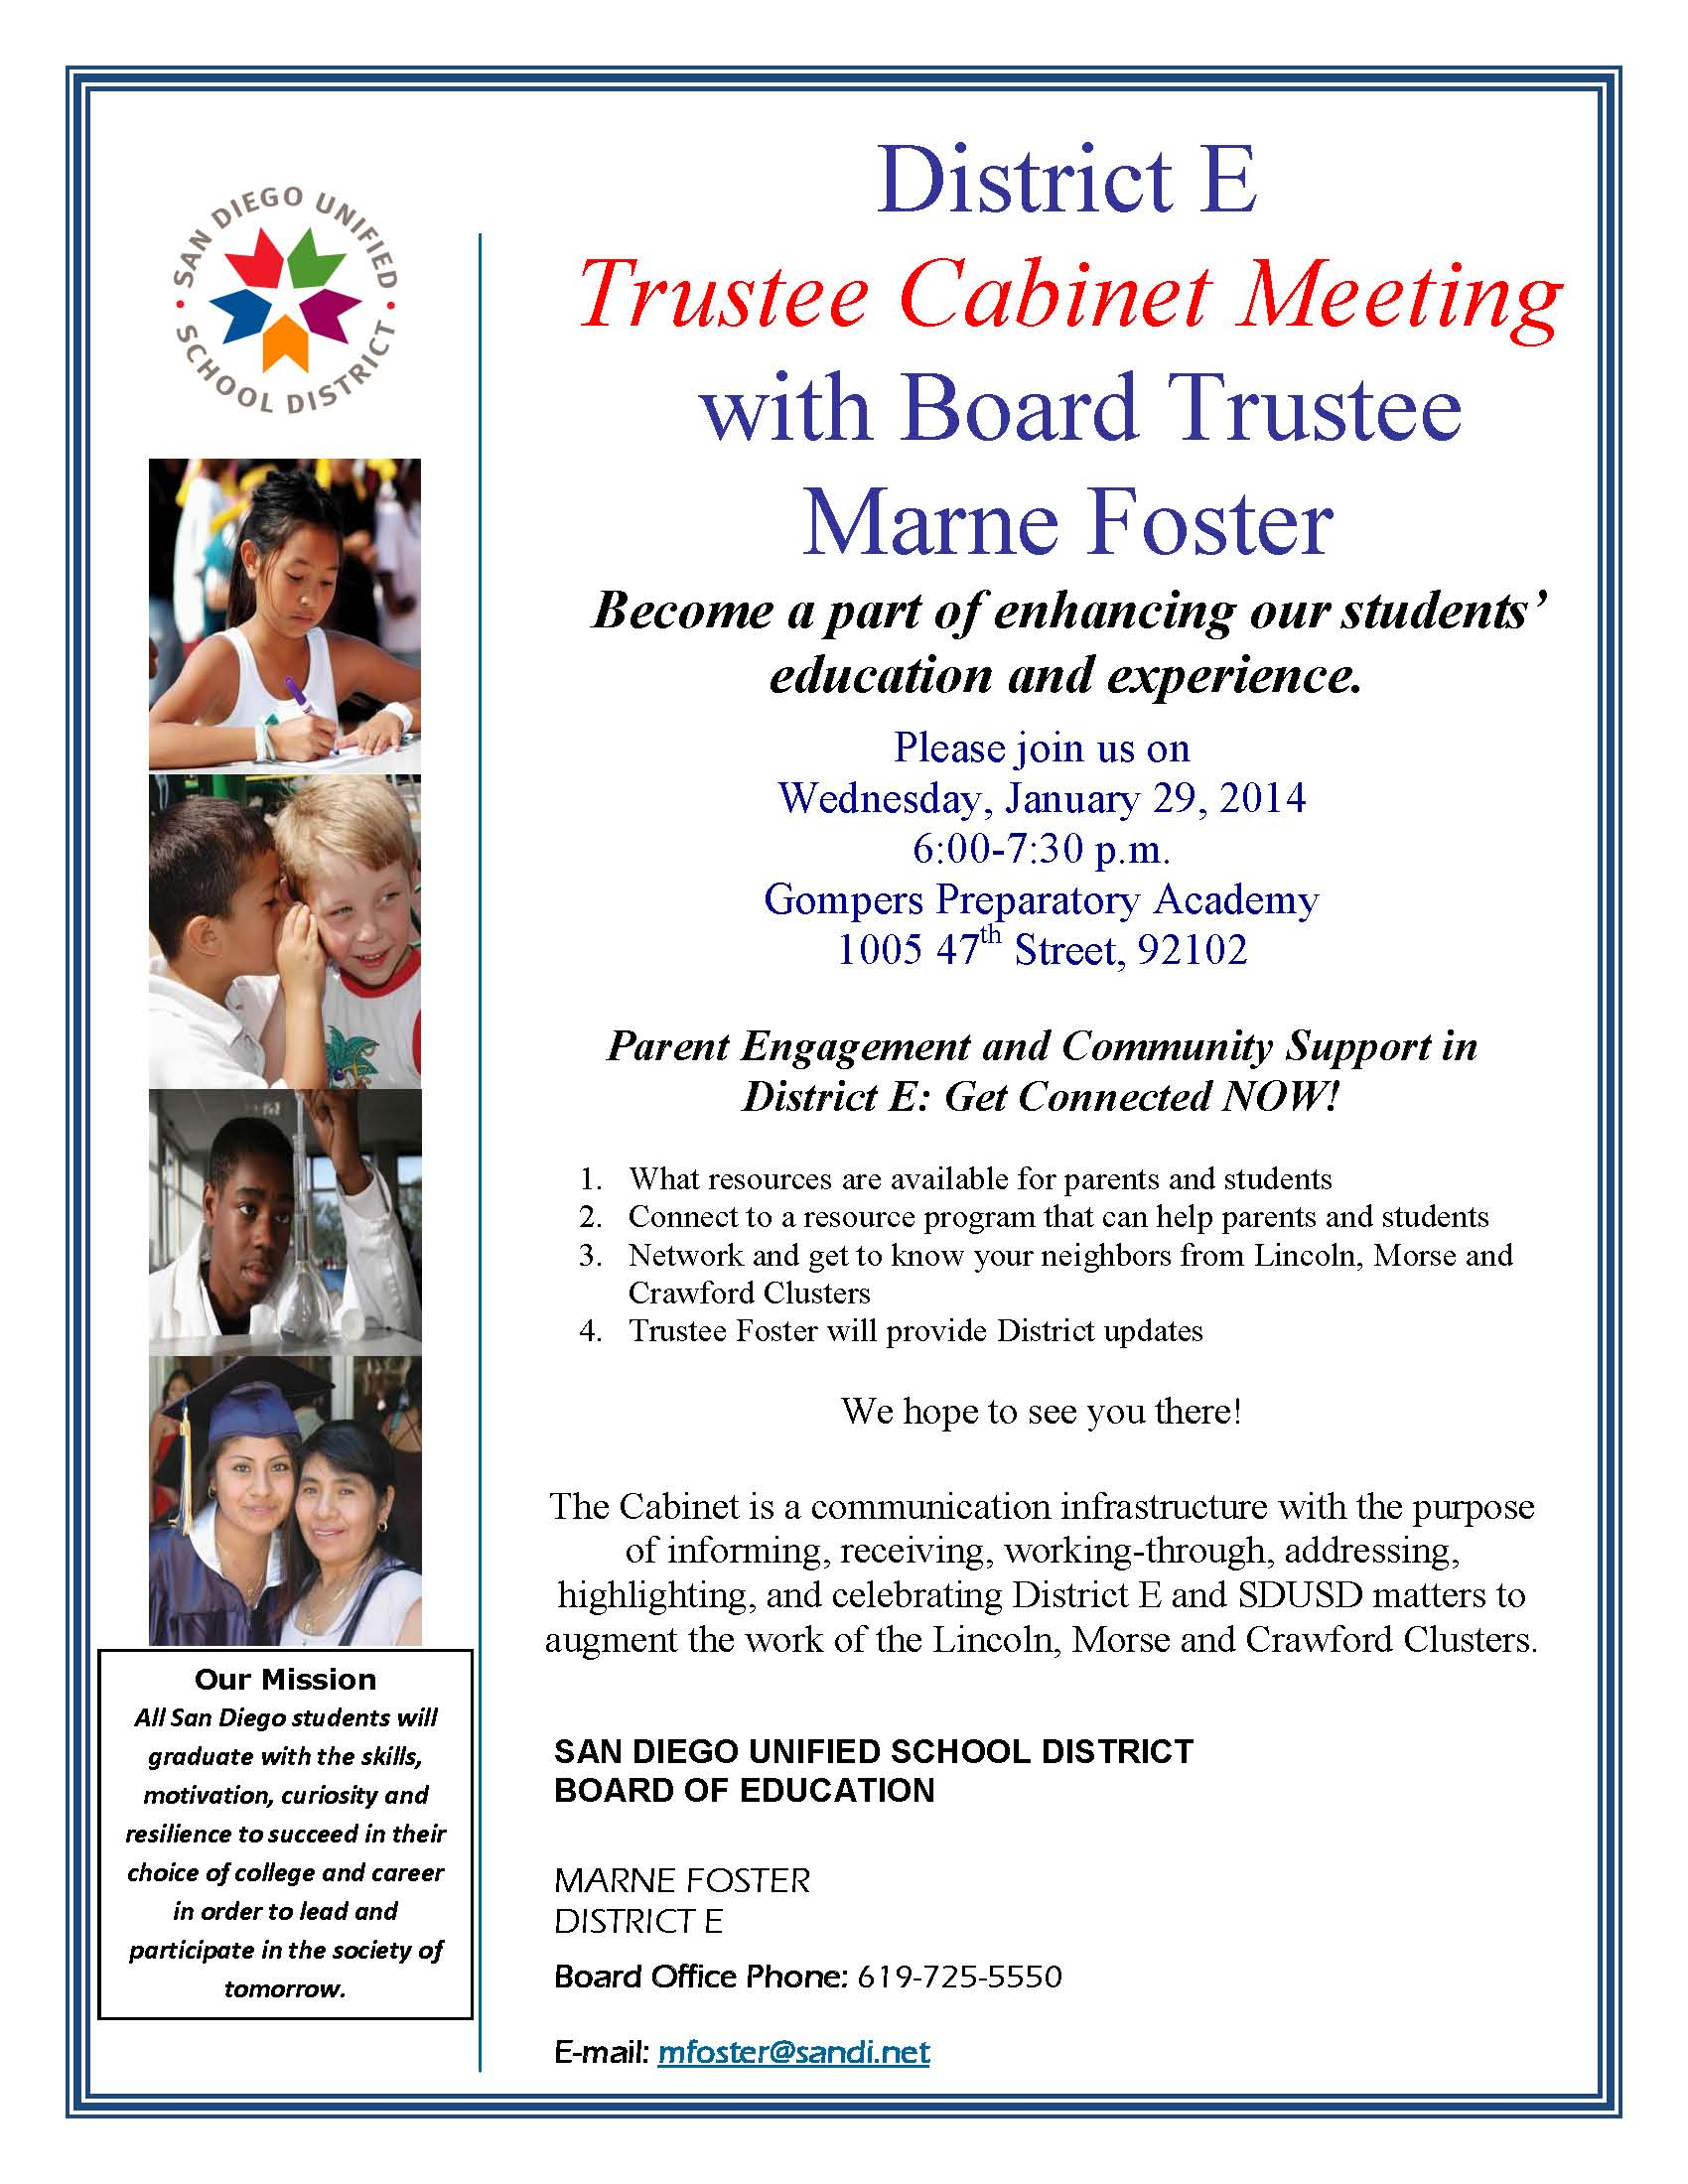 District E Trustee Cabinet Meeting with SDUSD Board Vice President Marne Foster